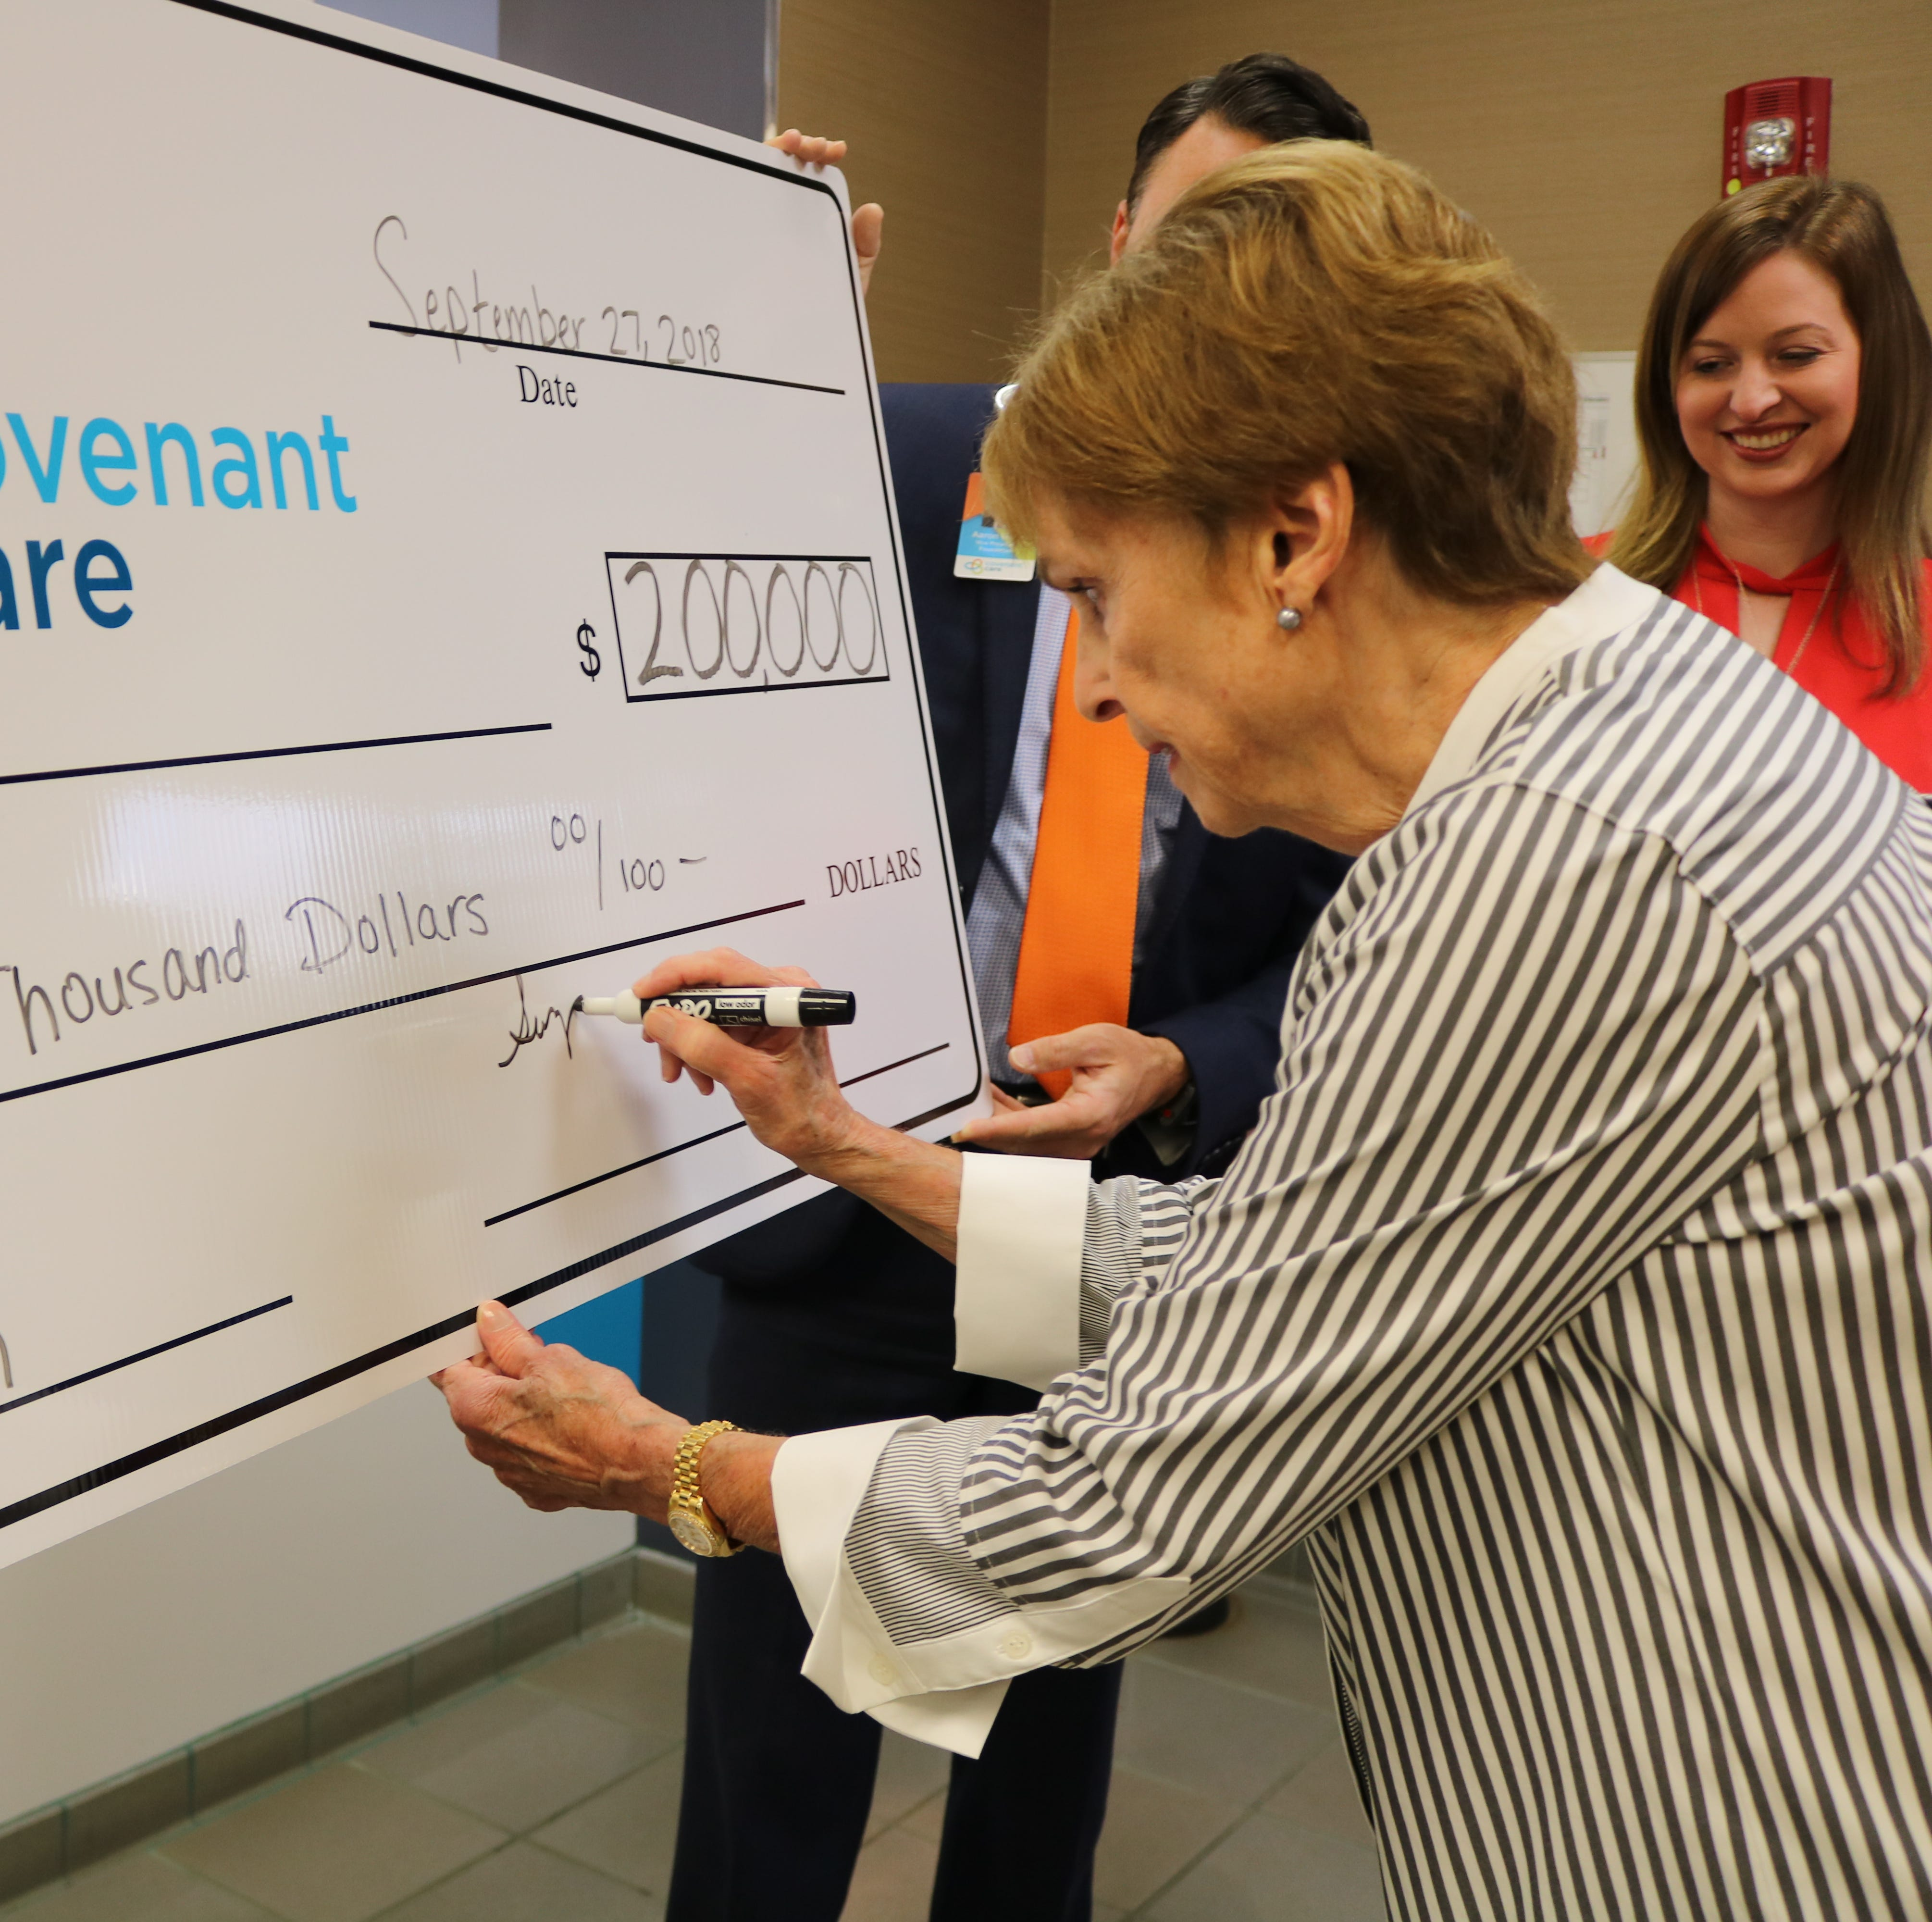 Covenant Care, UWF receive donations to fund My Wish endowment, STEM scholarships | Causes